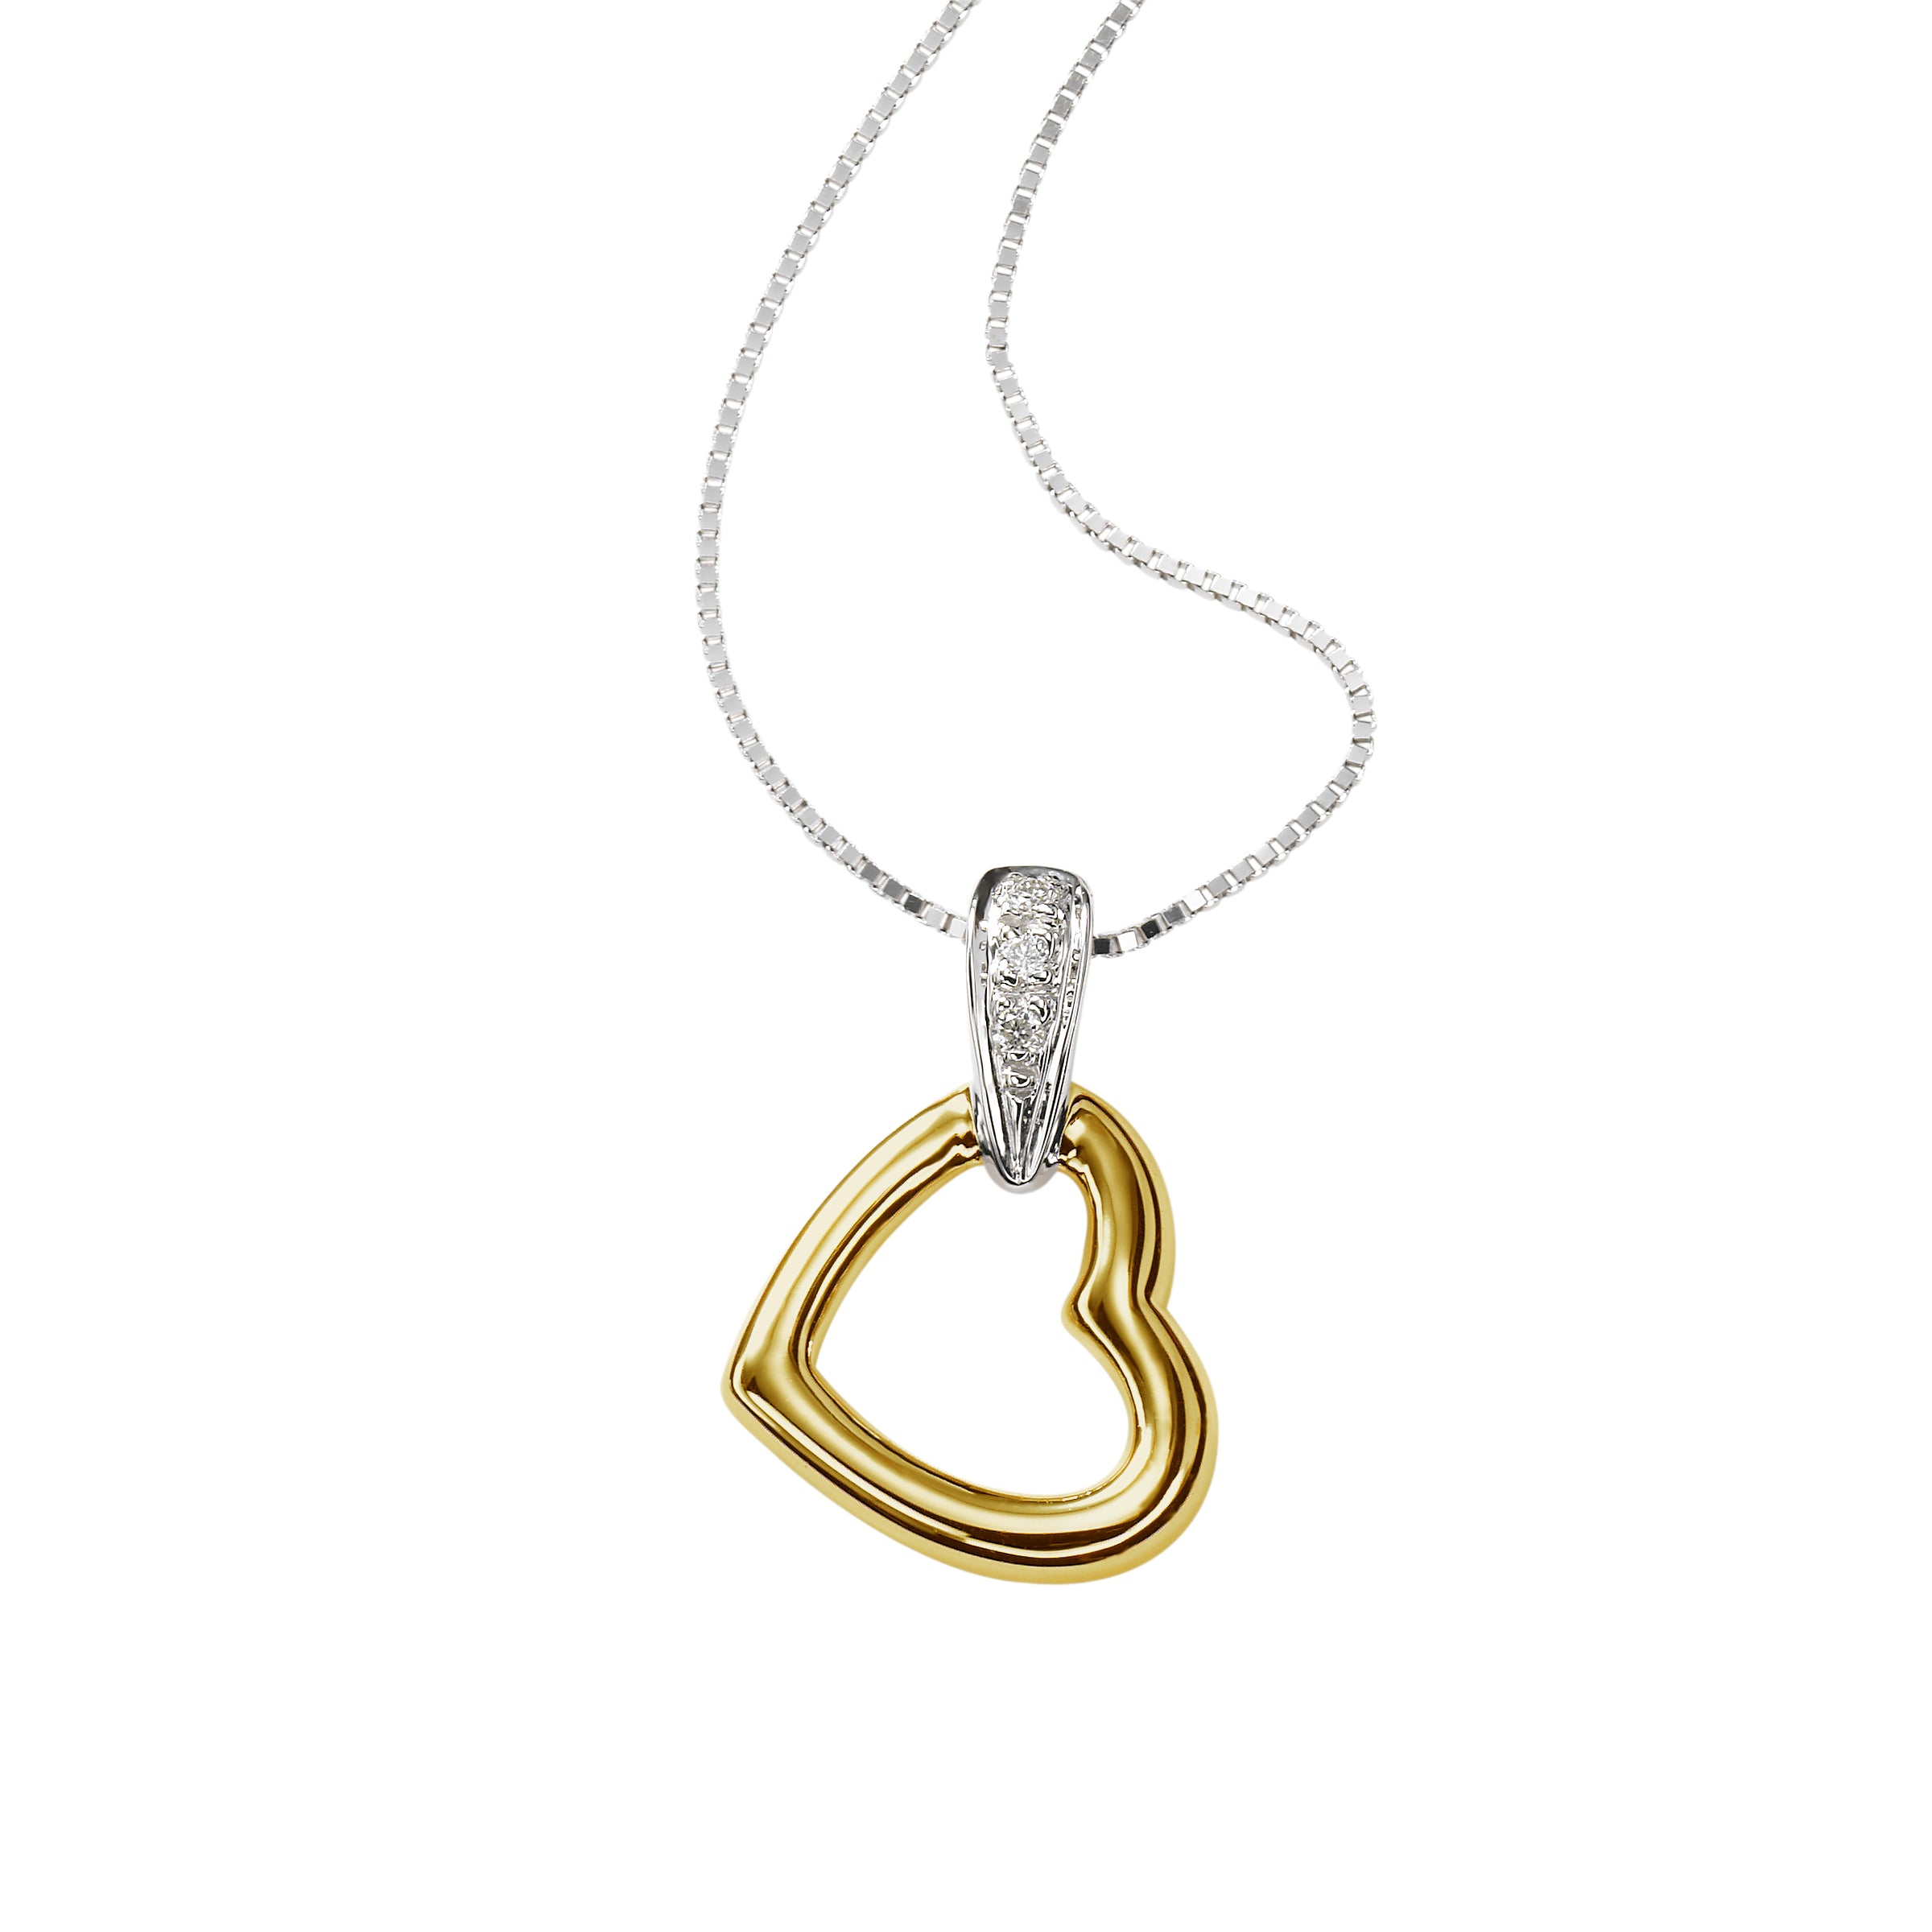 Children's Open Heart Pendant, 14k Yellow and White Gold